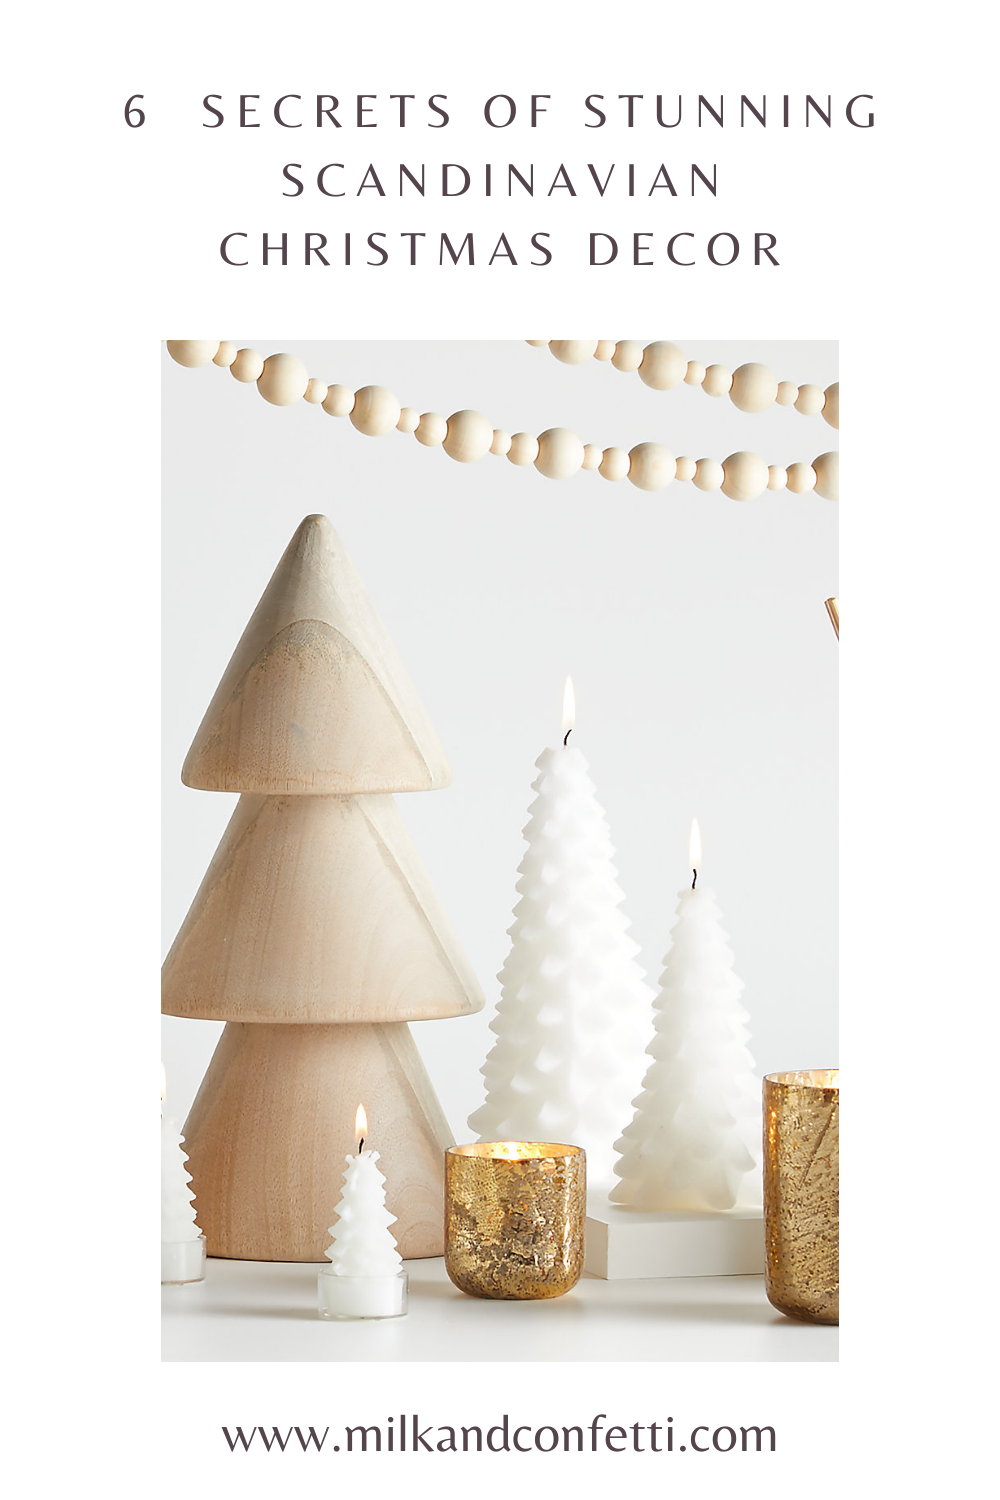 A wooden tree ornament sits beside gold metallic candle holders and white Christmas tree candles under strings of wooden bead garlands for a Scandinavian Christmas display.